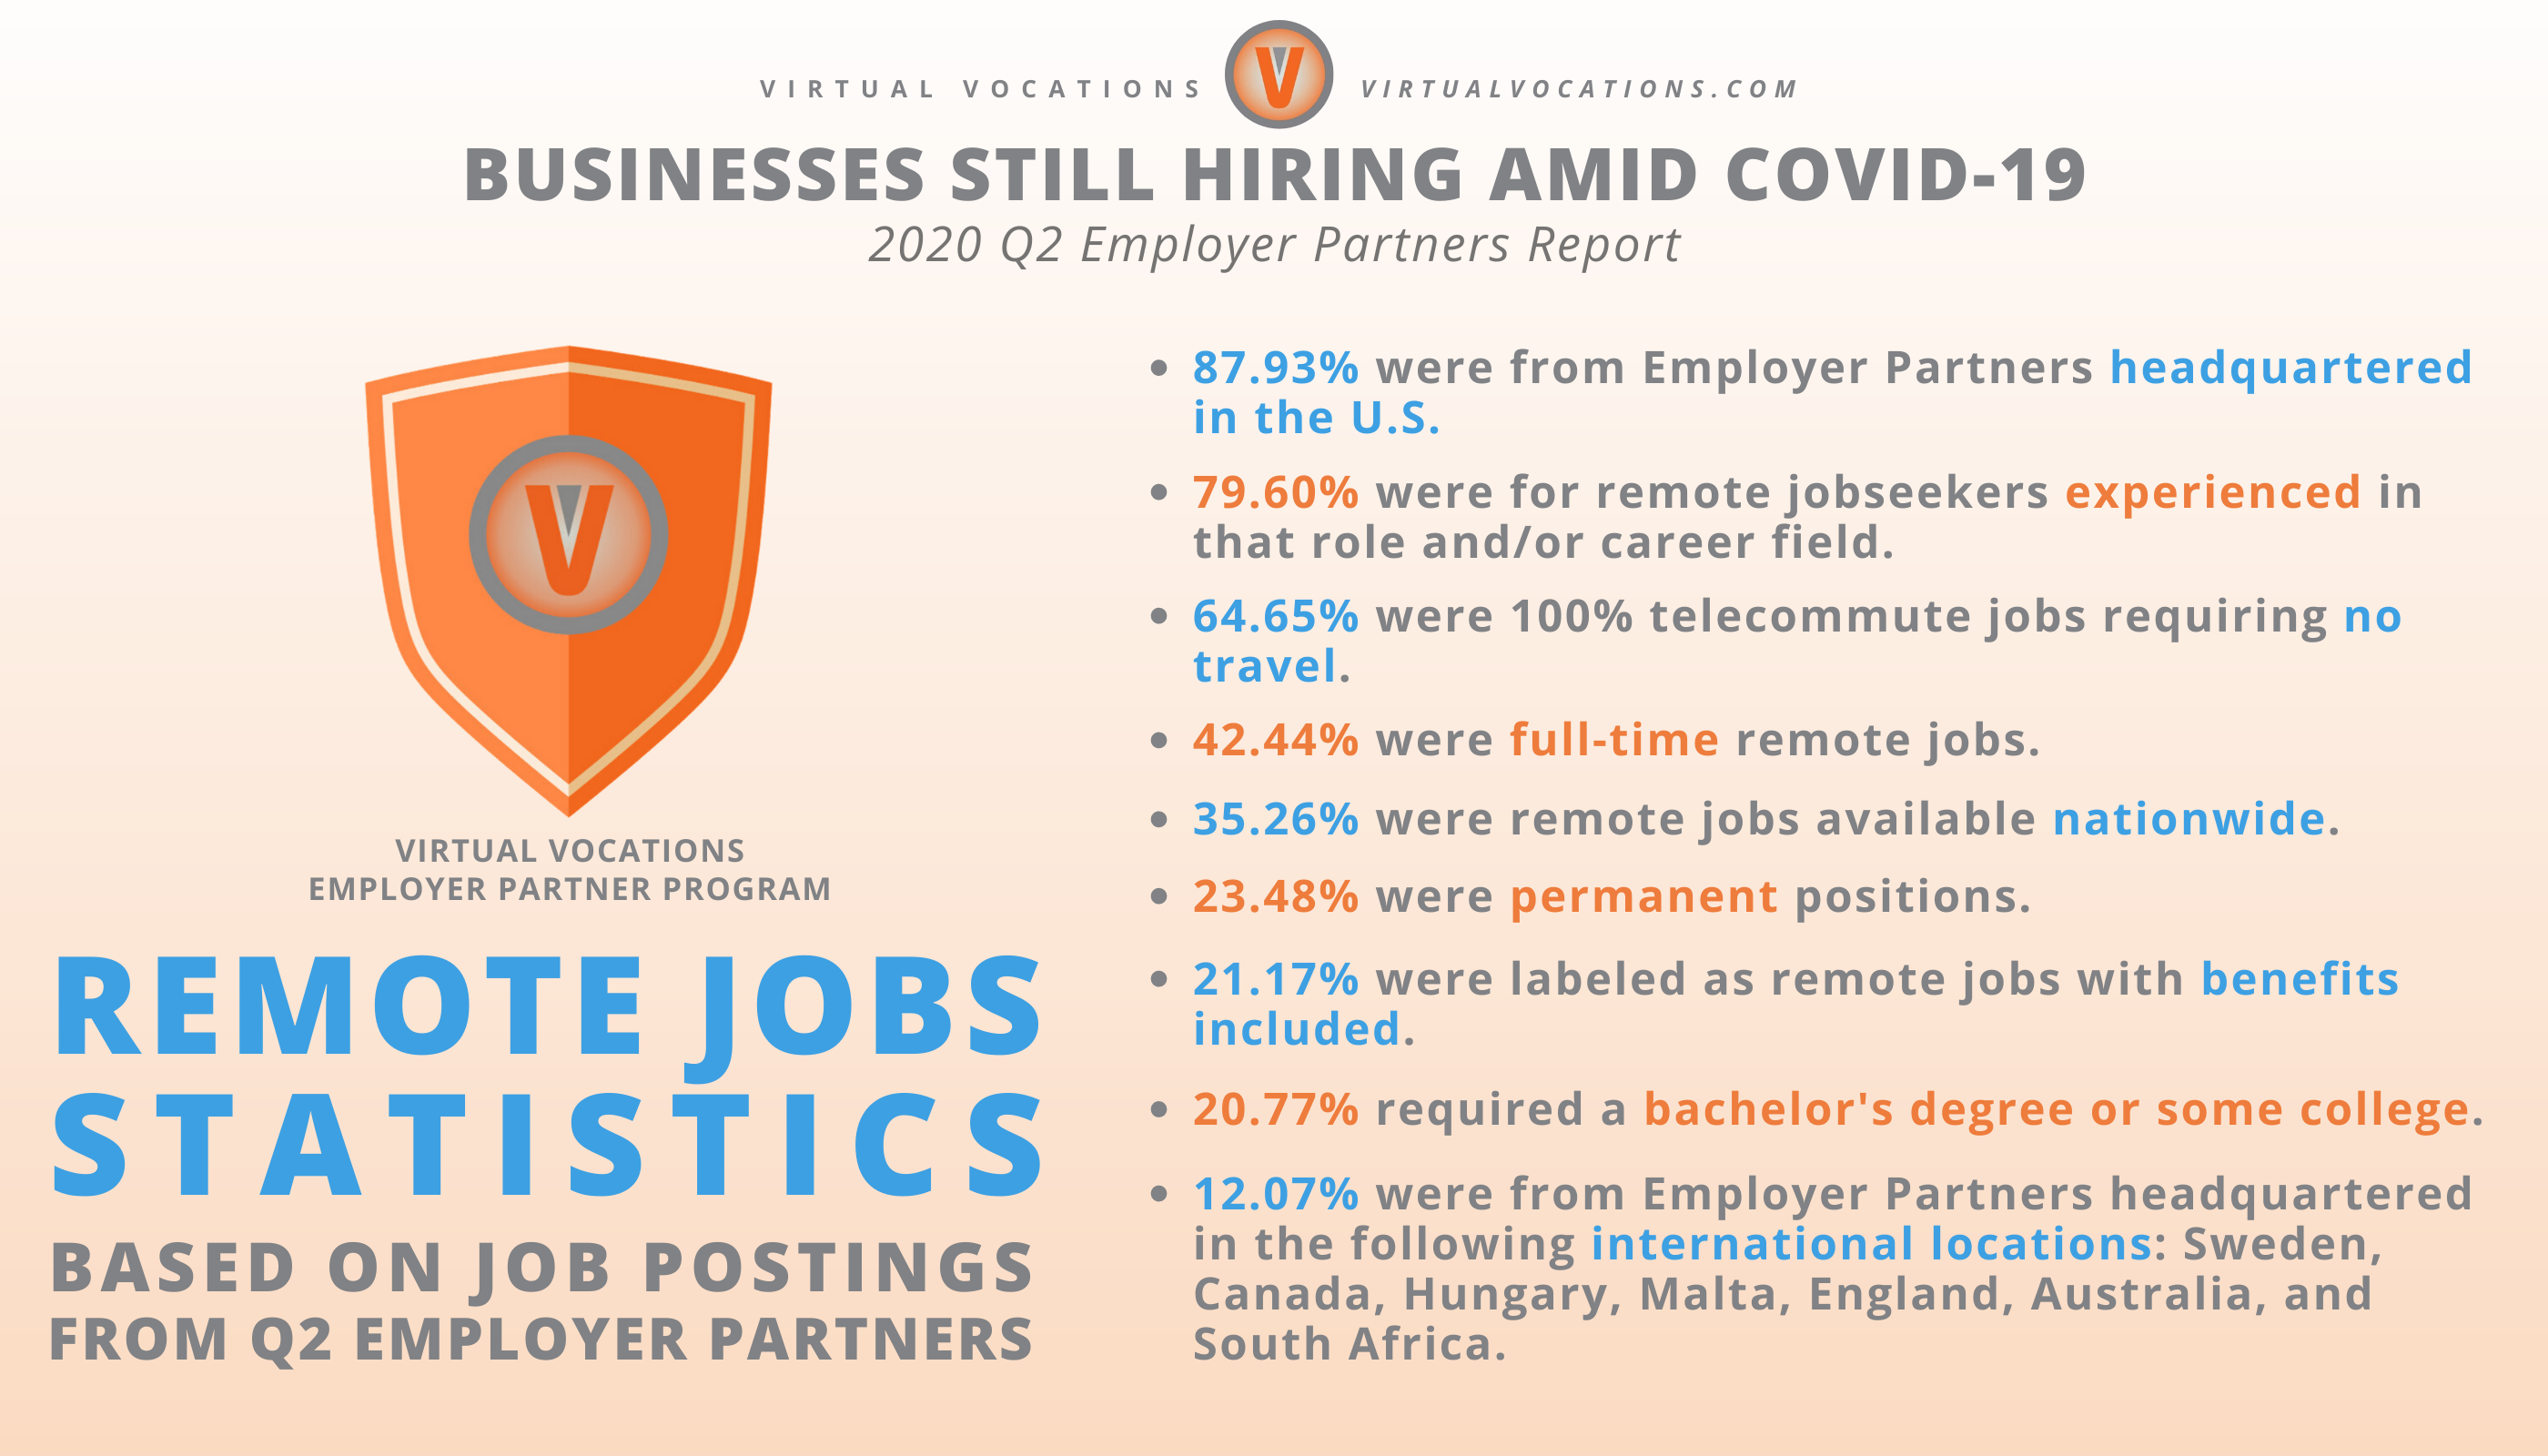 Virtual Vocations Businesses Still Hiring Amid COVID-19 - Q2 Employer Partners Report - Employer Partners Remote Jobs Statistics